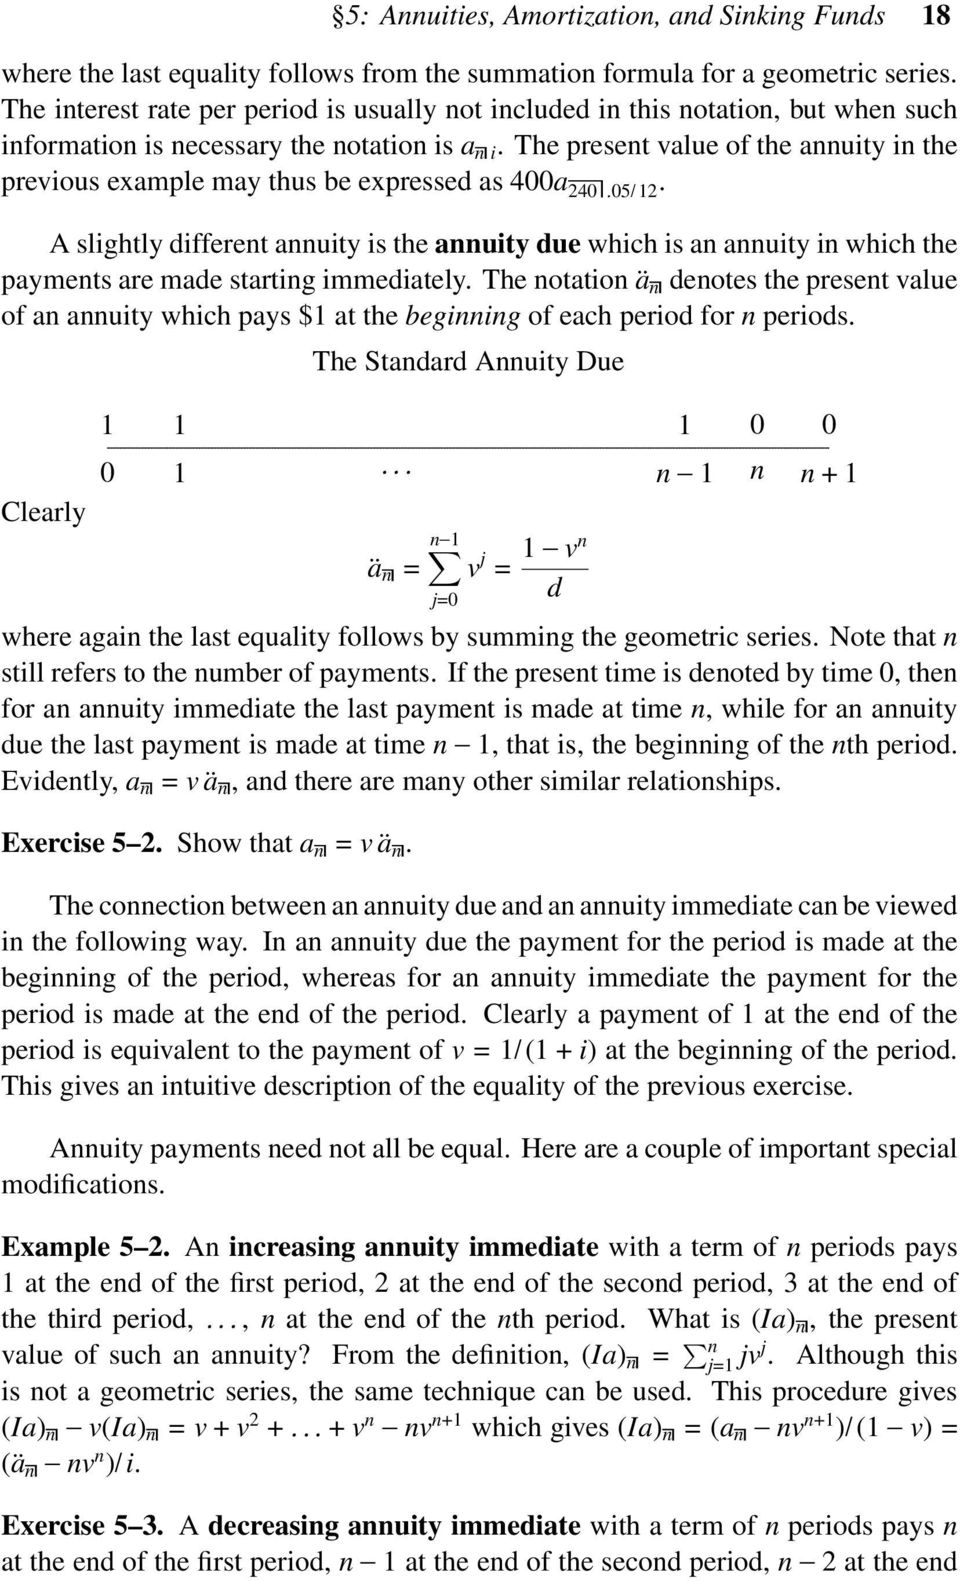 The present value of the annuity in the previous example may thus be expressed as 400a 240.05/12.